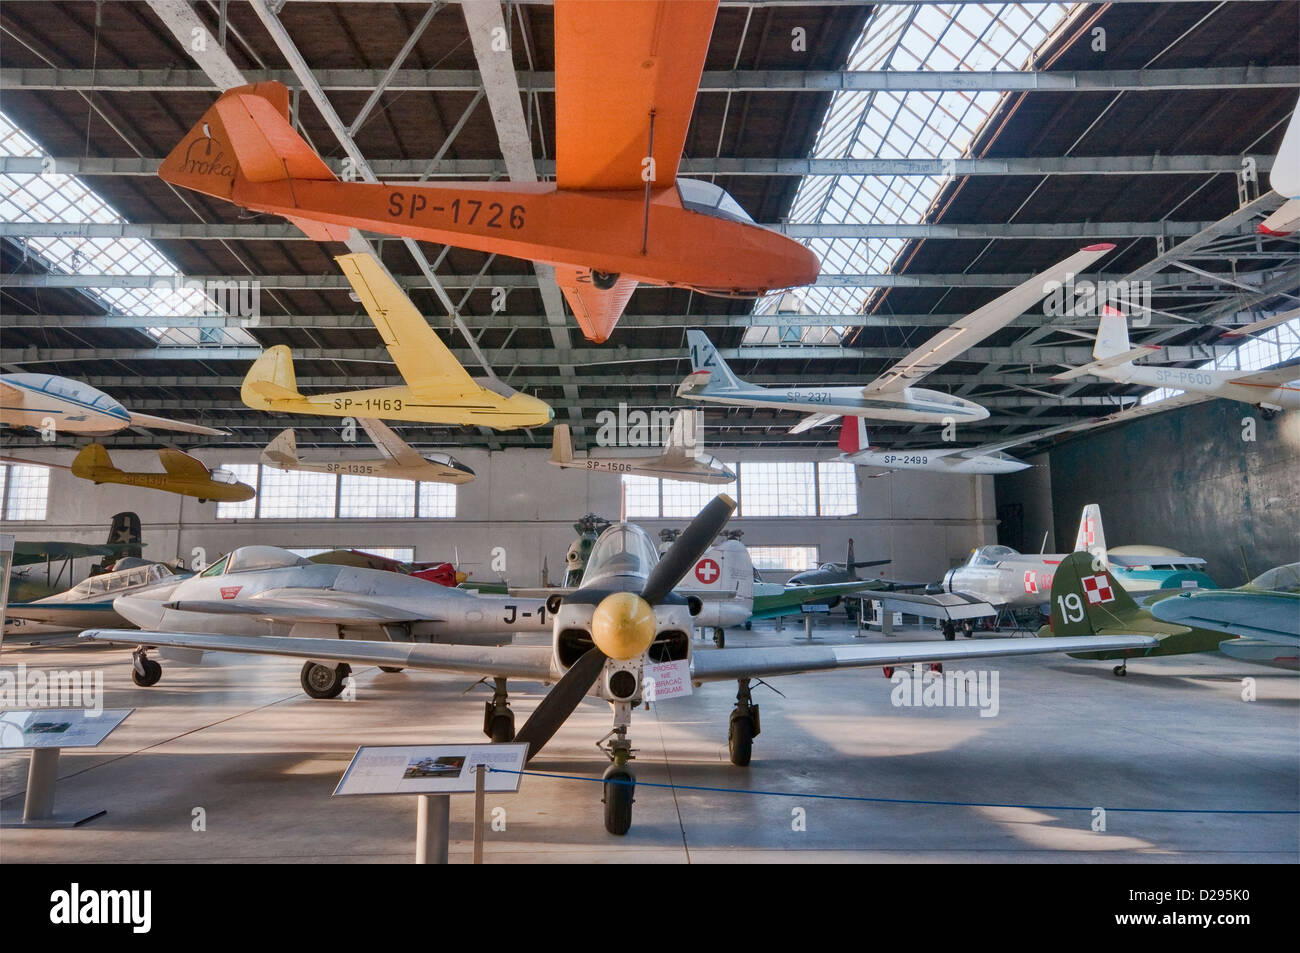 PZL M-4 Tarpan trainer aircraft, Polish Aviation Museum in Krakow, Poland - Stock Image